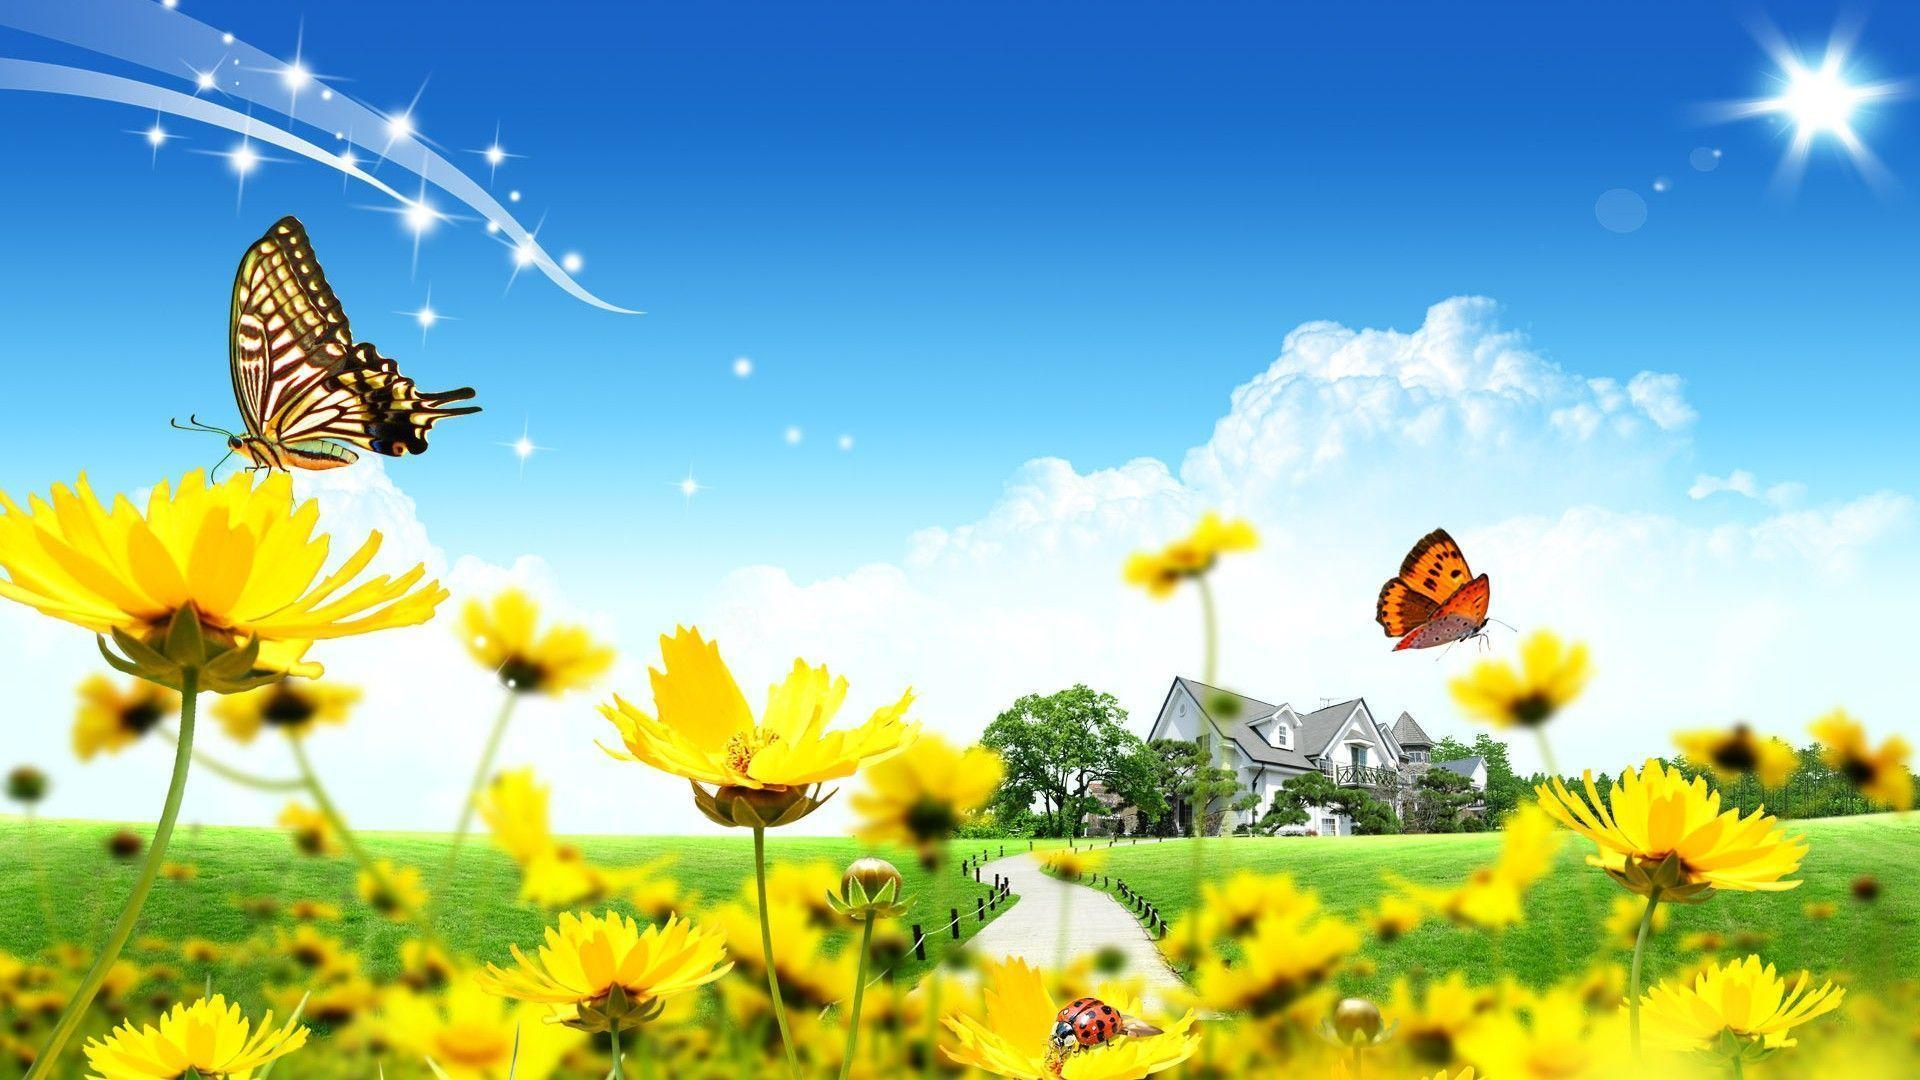 Spring theme wallpapers wallpaper cave for Ete wallpaper